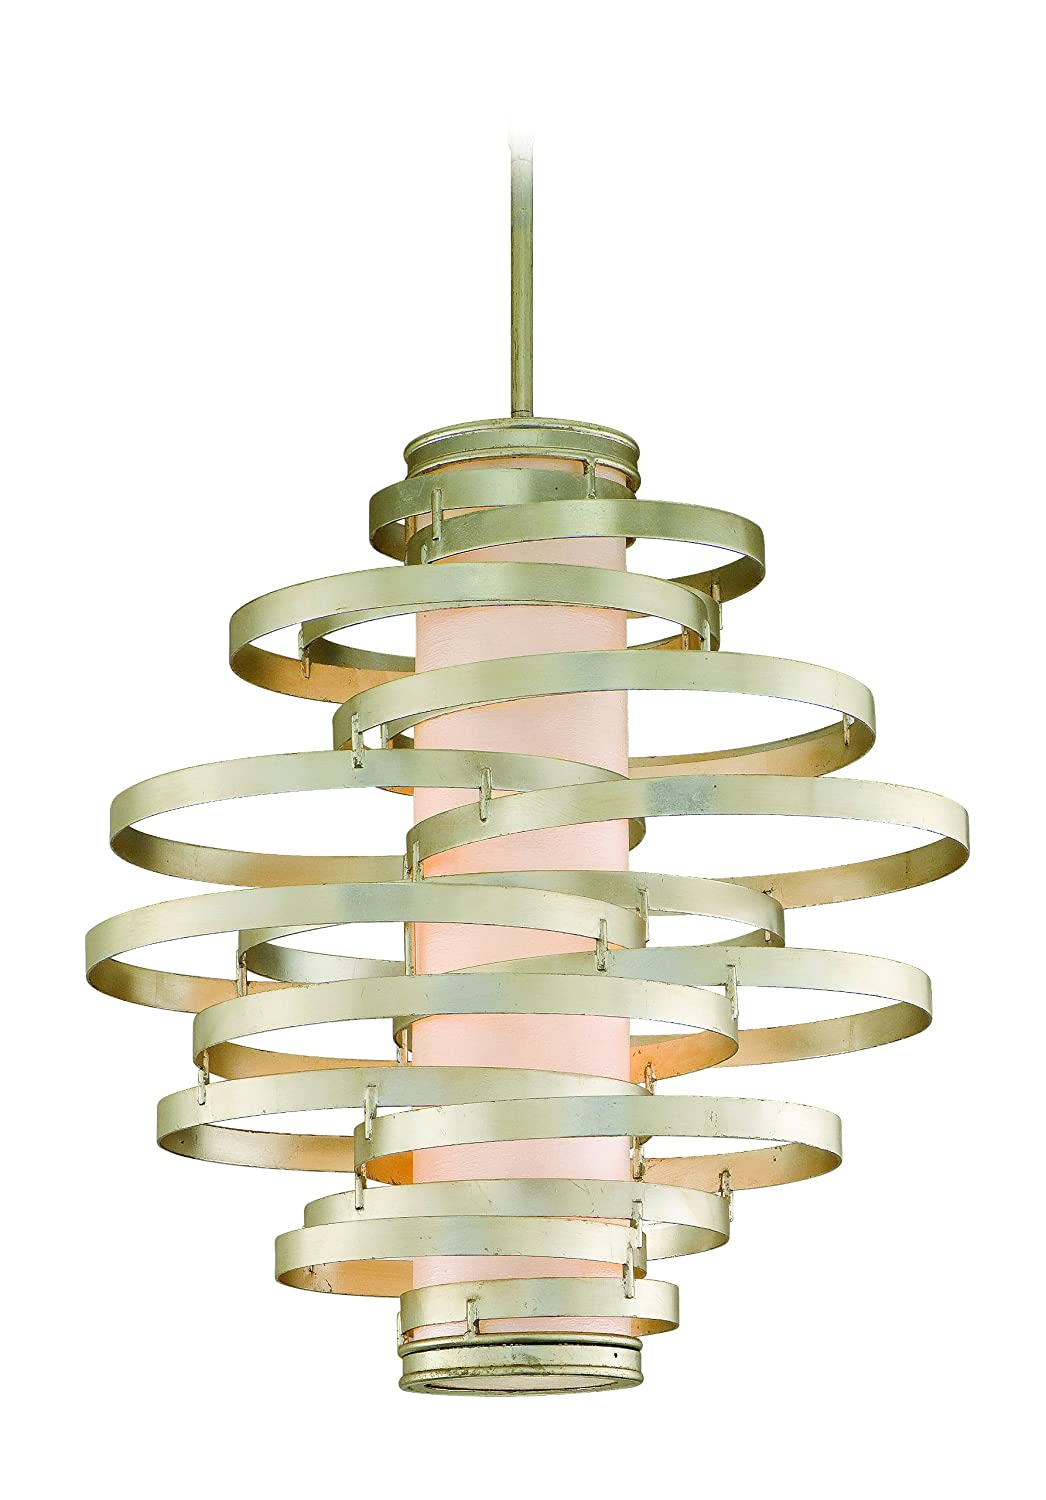 copper previous light petite vertigo buy amara products ceiling friture large pendant